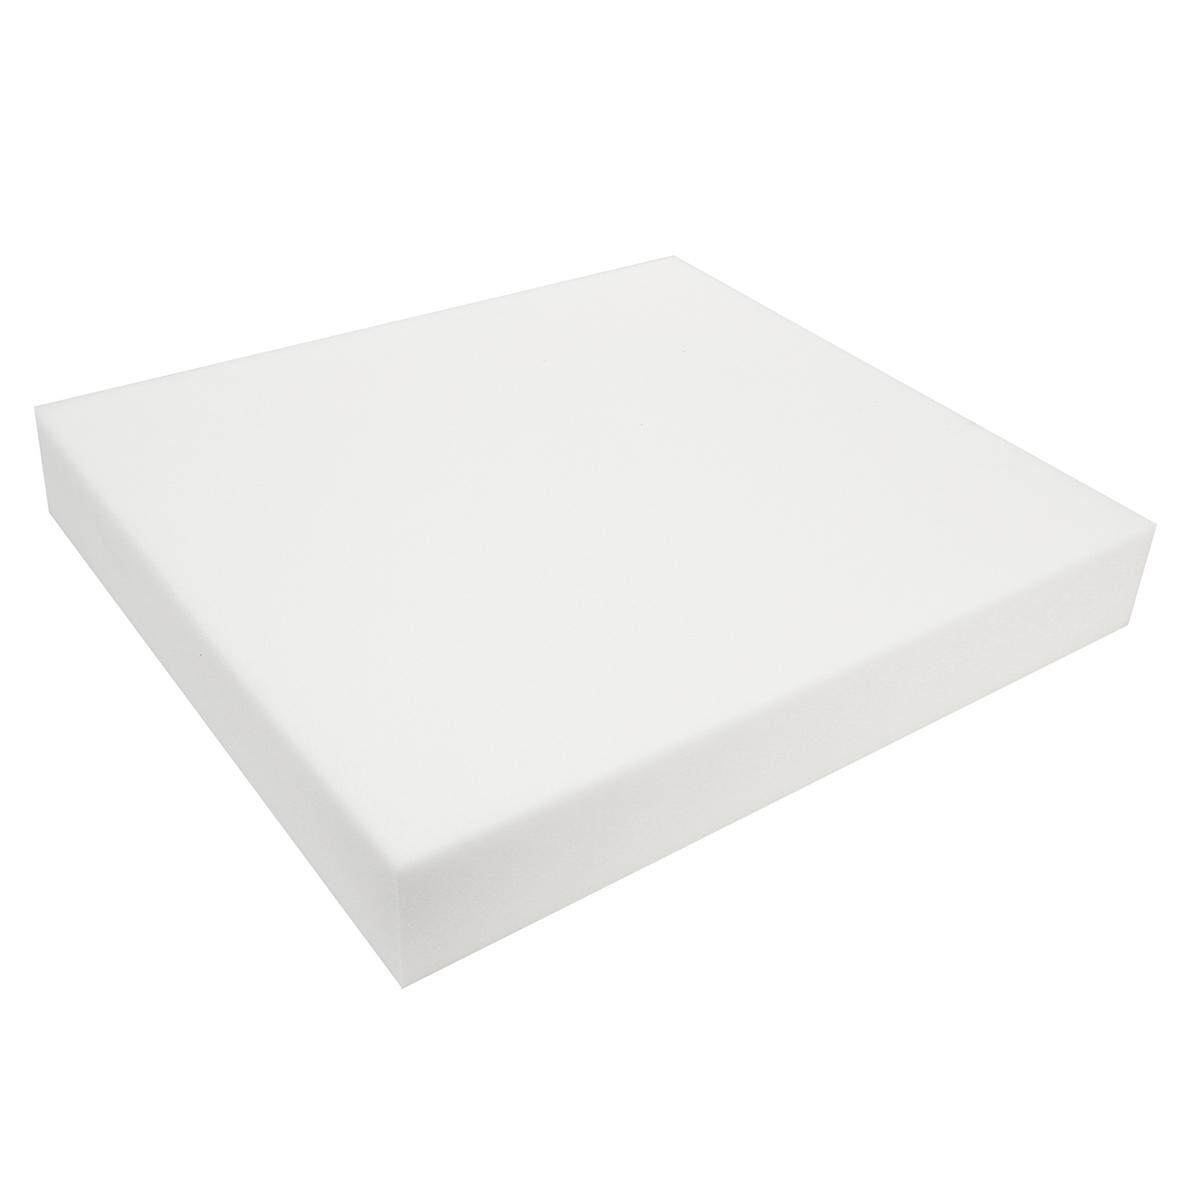 High Density Upholstery Foam Cushions Seat Pad Sofa, Replacement Cut To Any Size  5cm By Moonbeam.